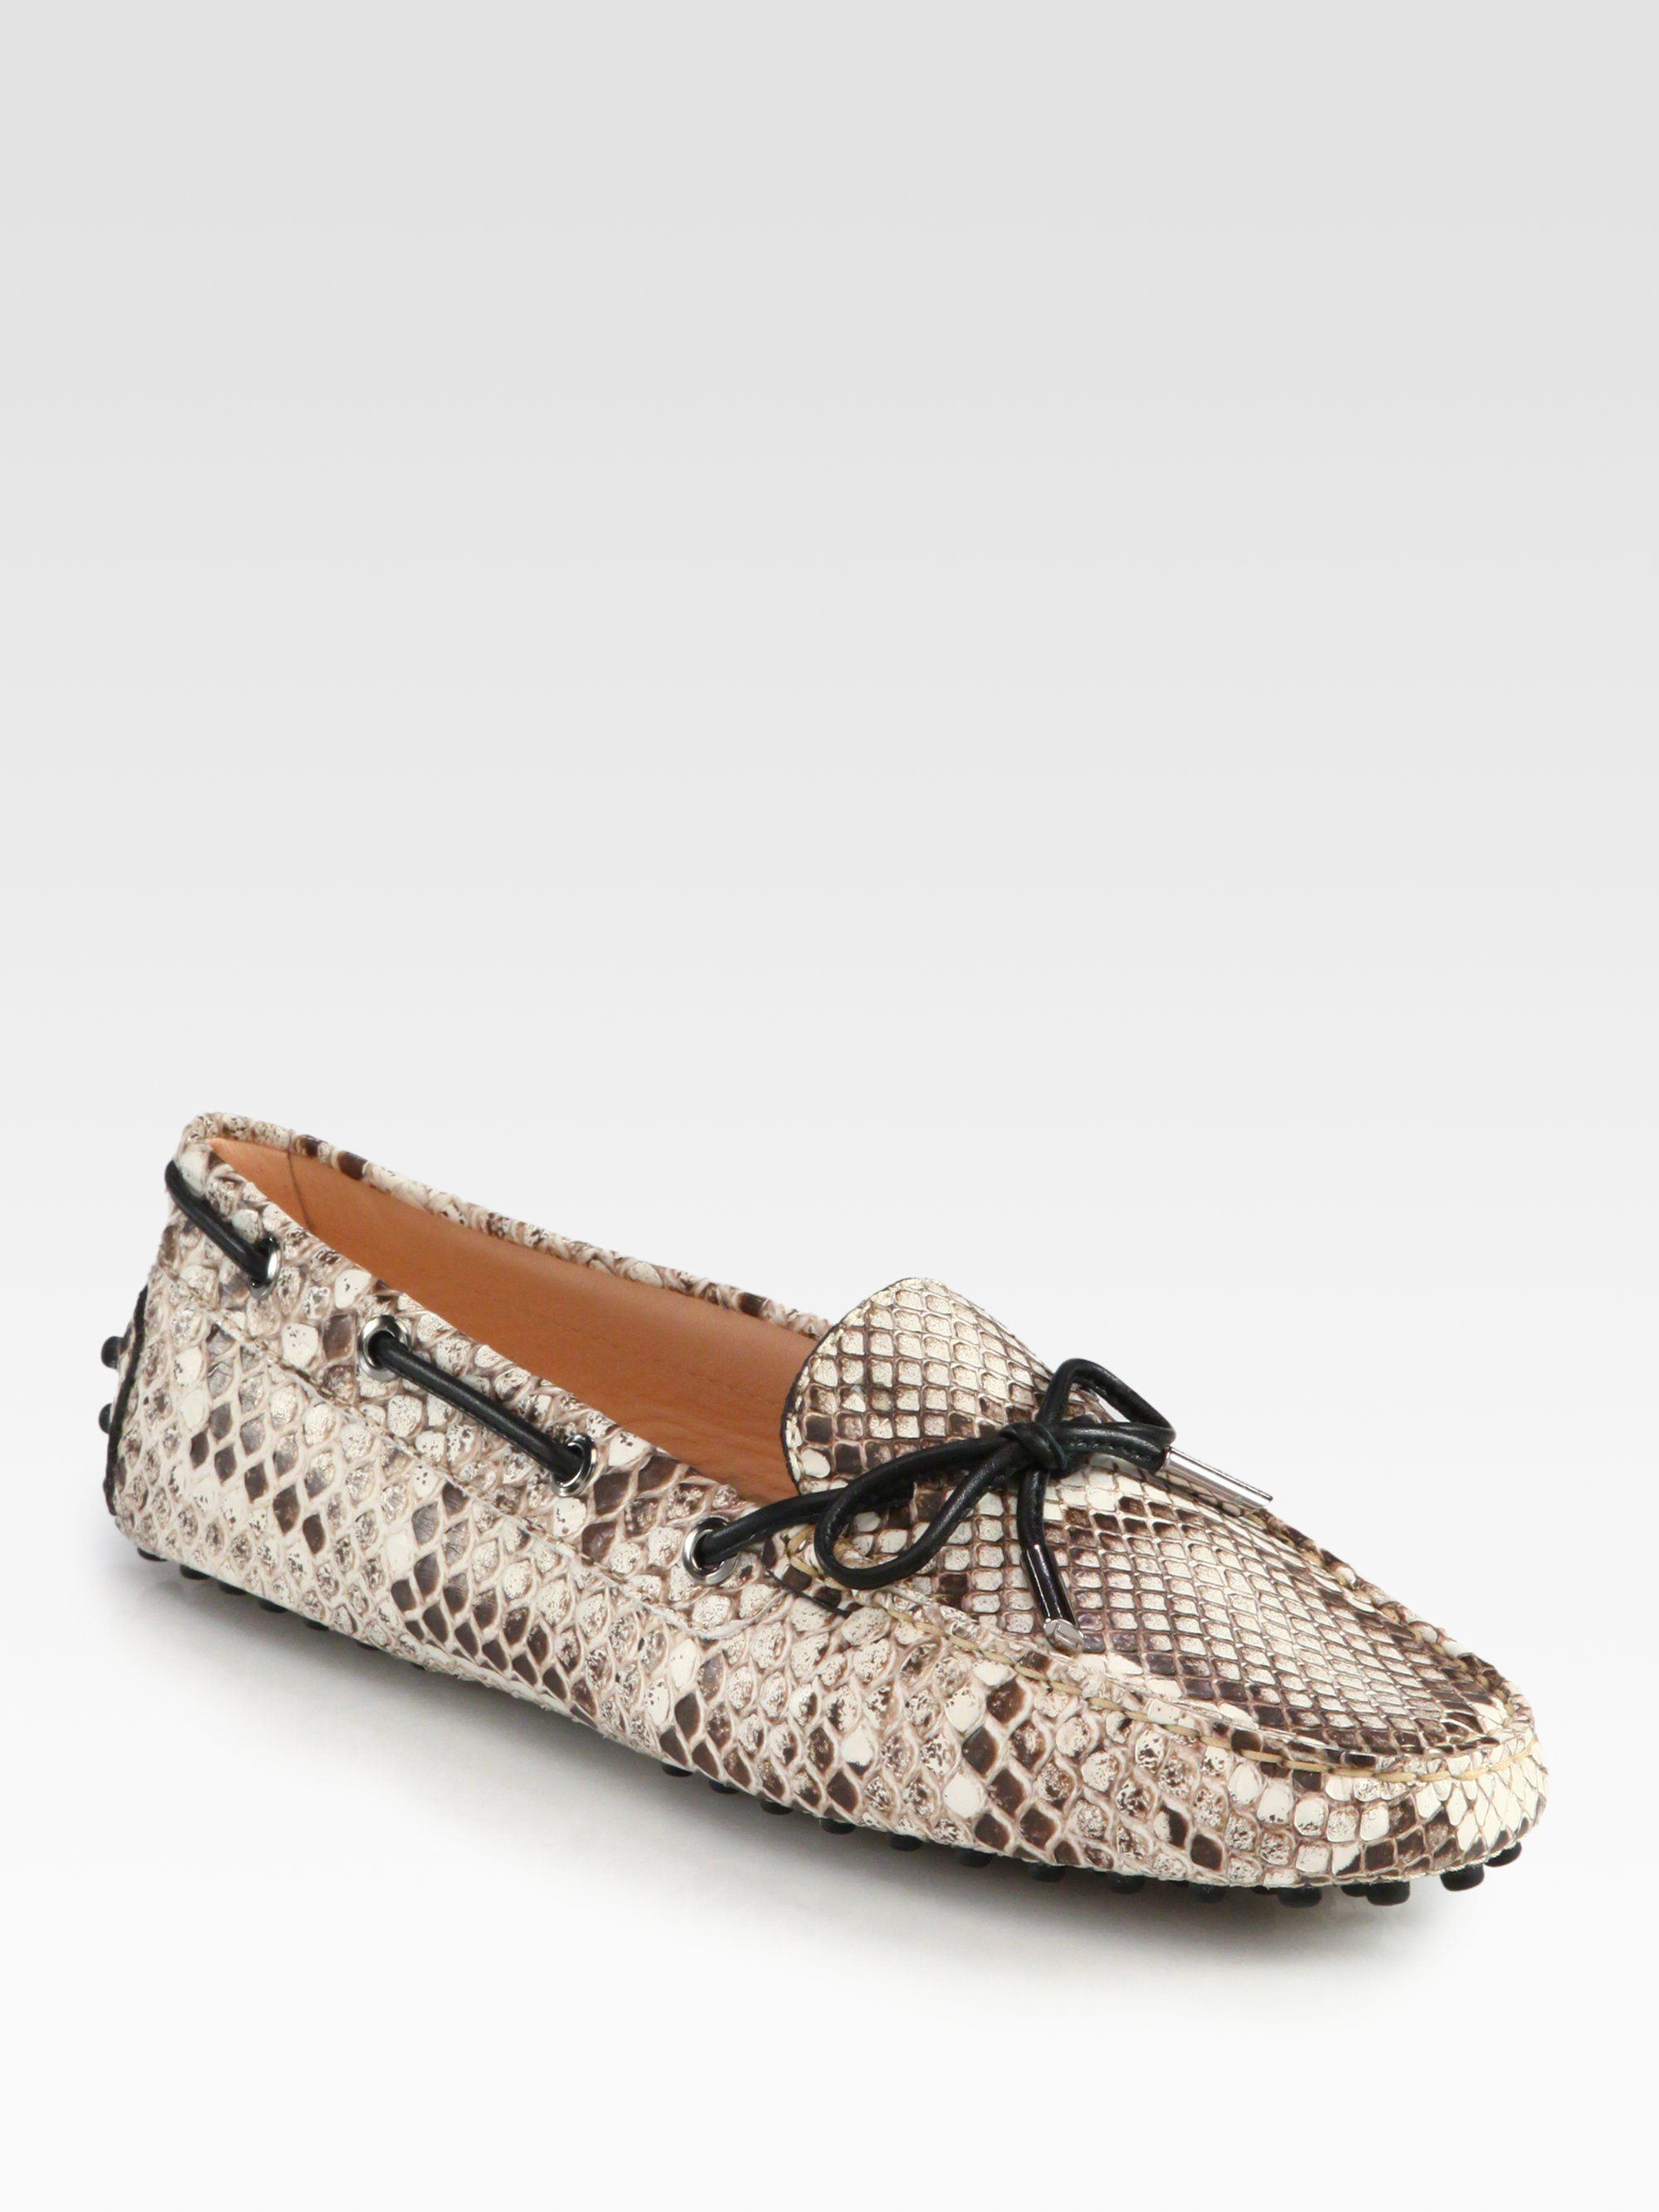 ccfea974bce Lyst - Tod s Snakeprint Leather Moccasin Loafers in White